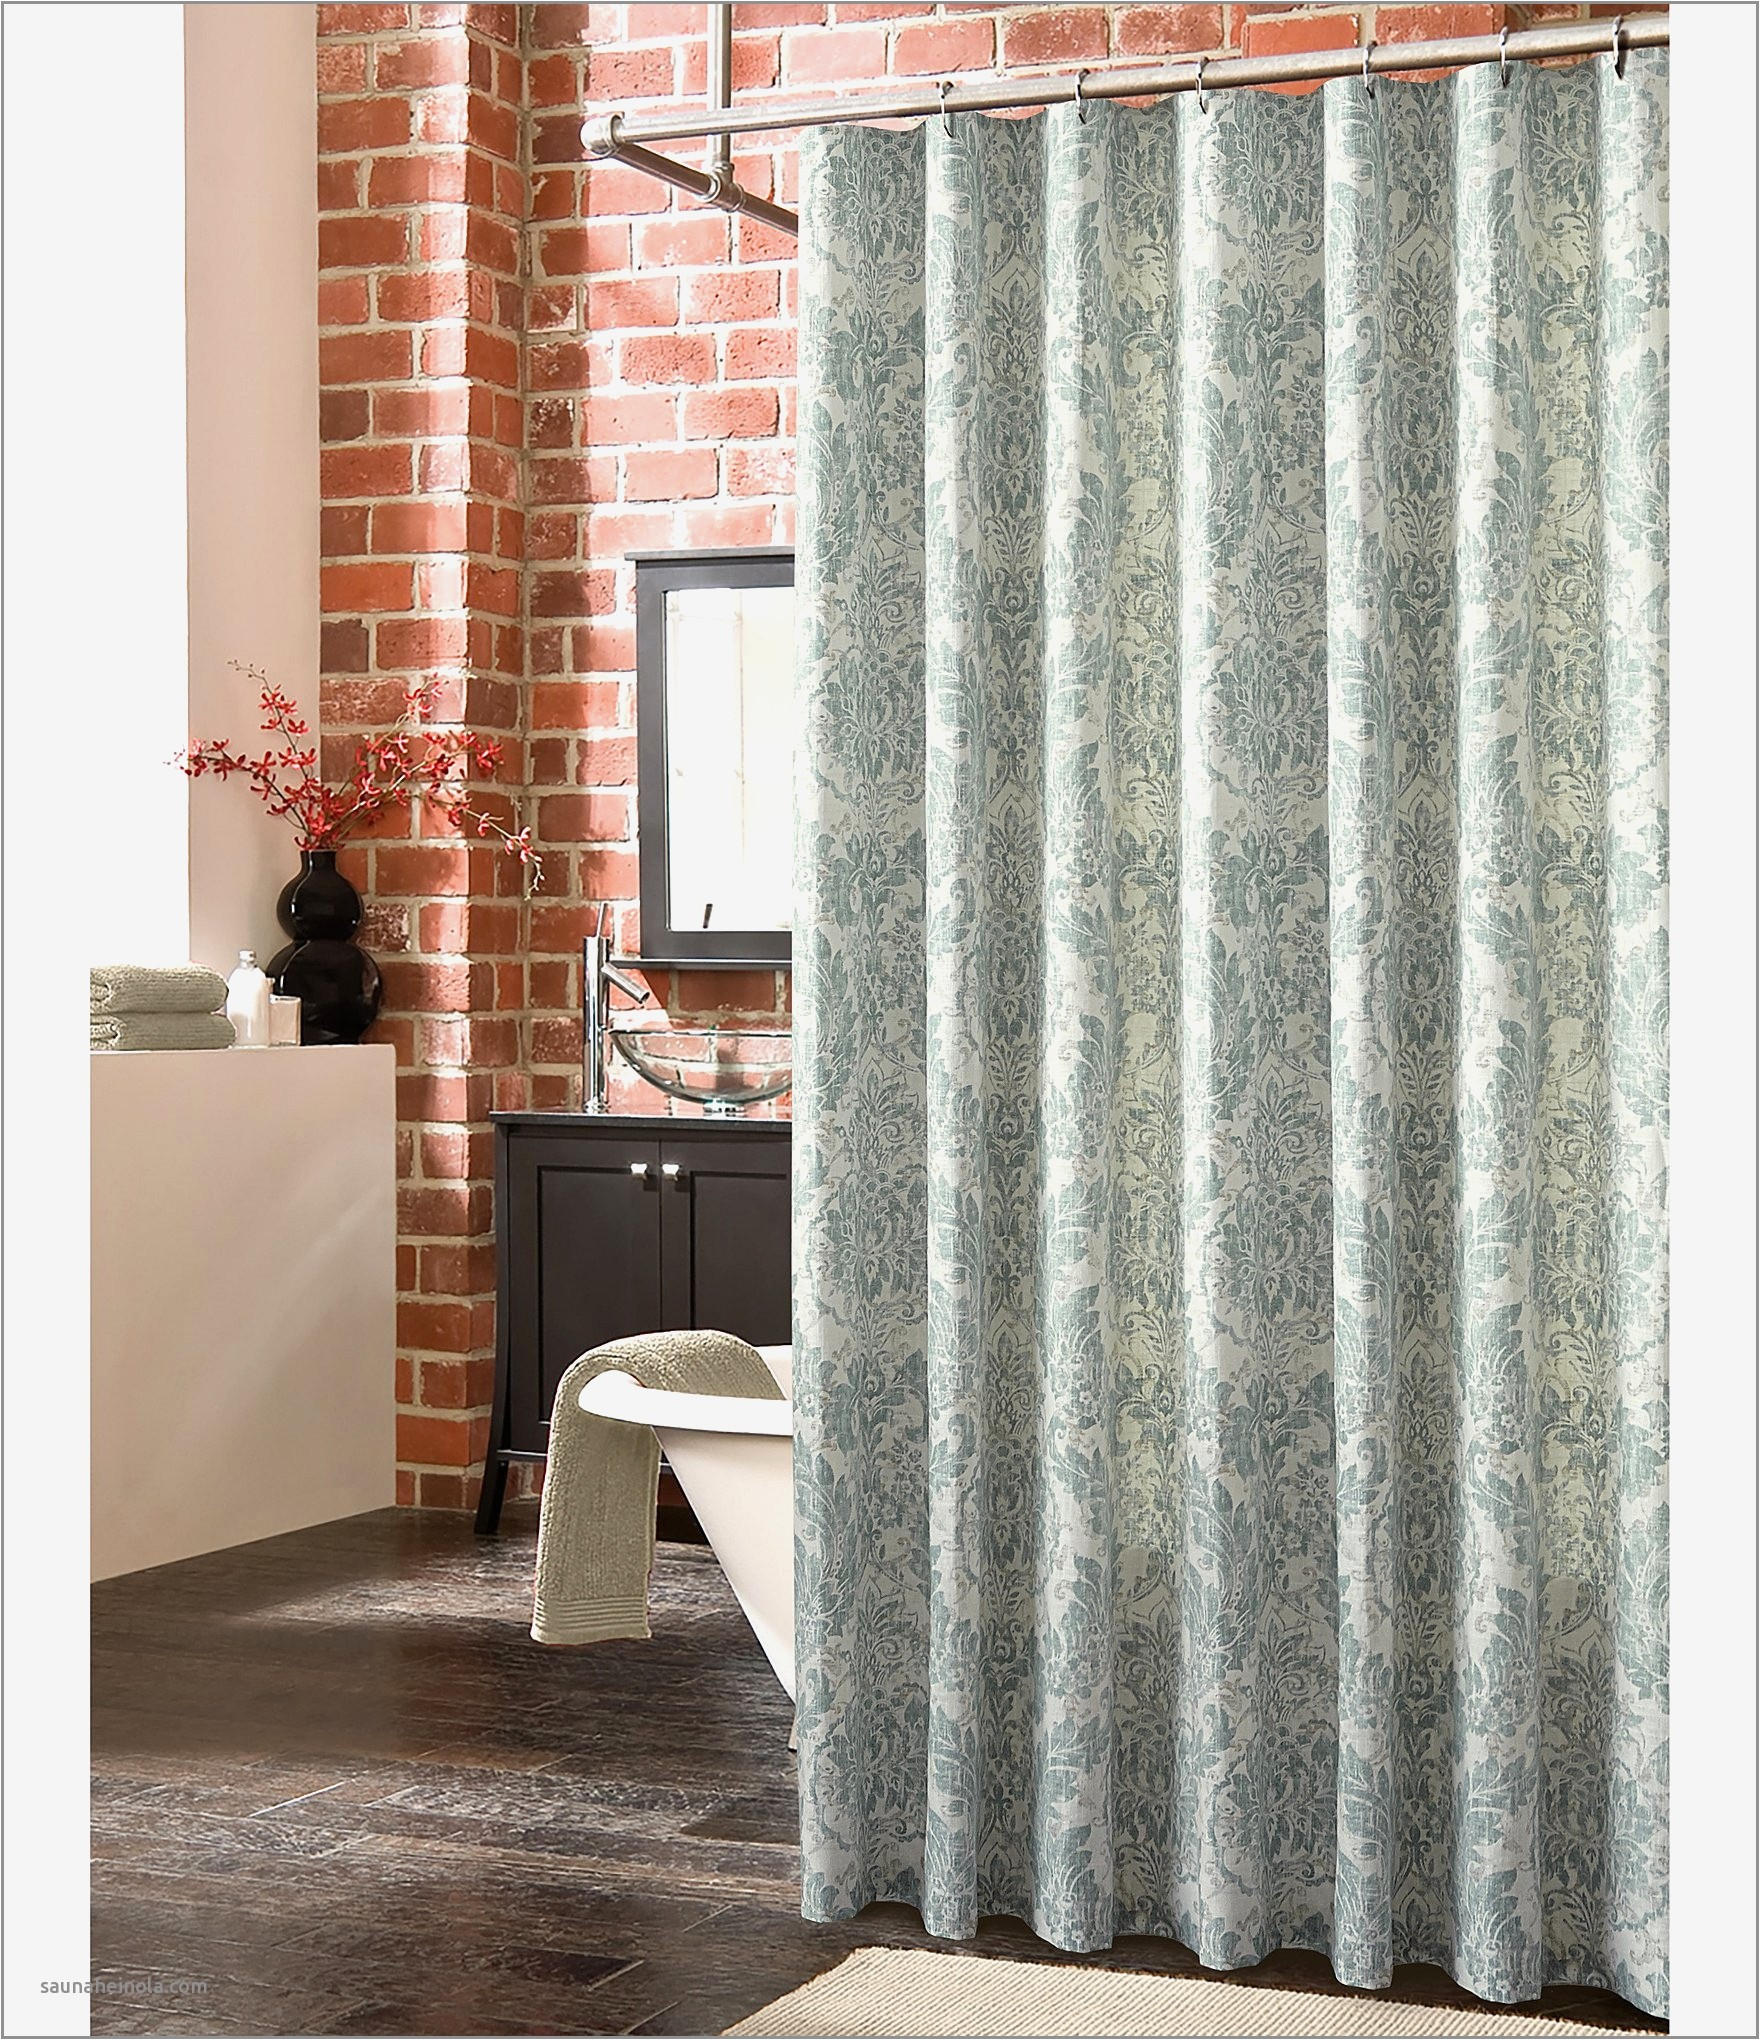 24 new beach shower curtain scheme of curtains at kohls